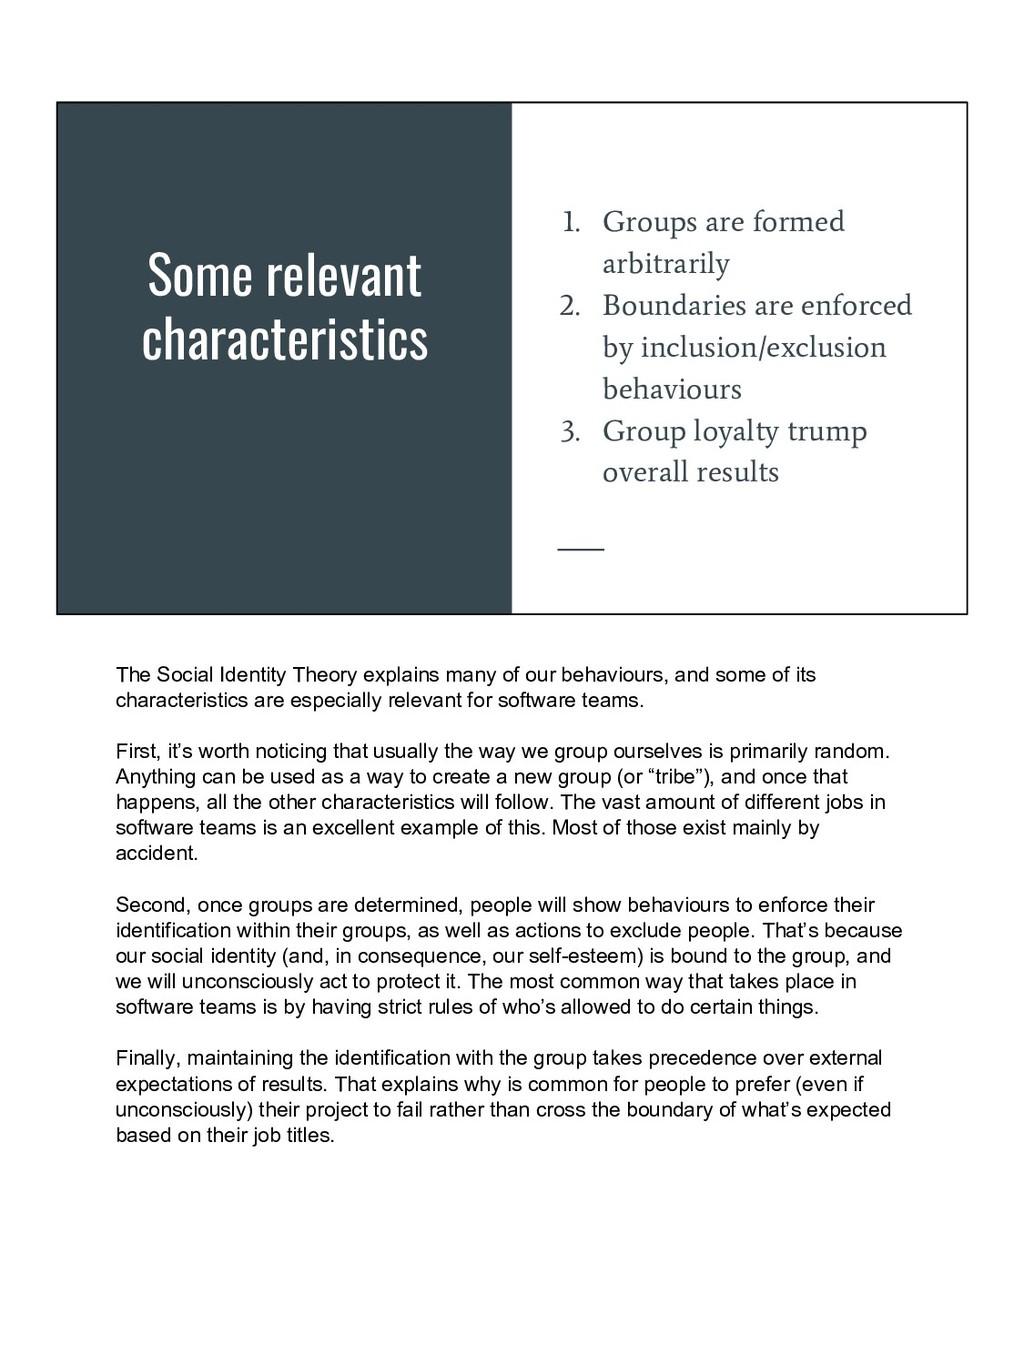 Some relevant characteristics 1. Groups are for...